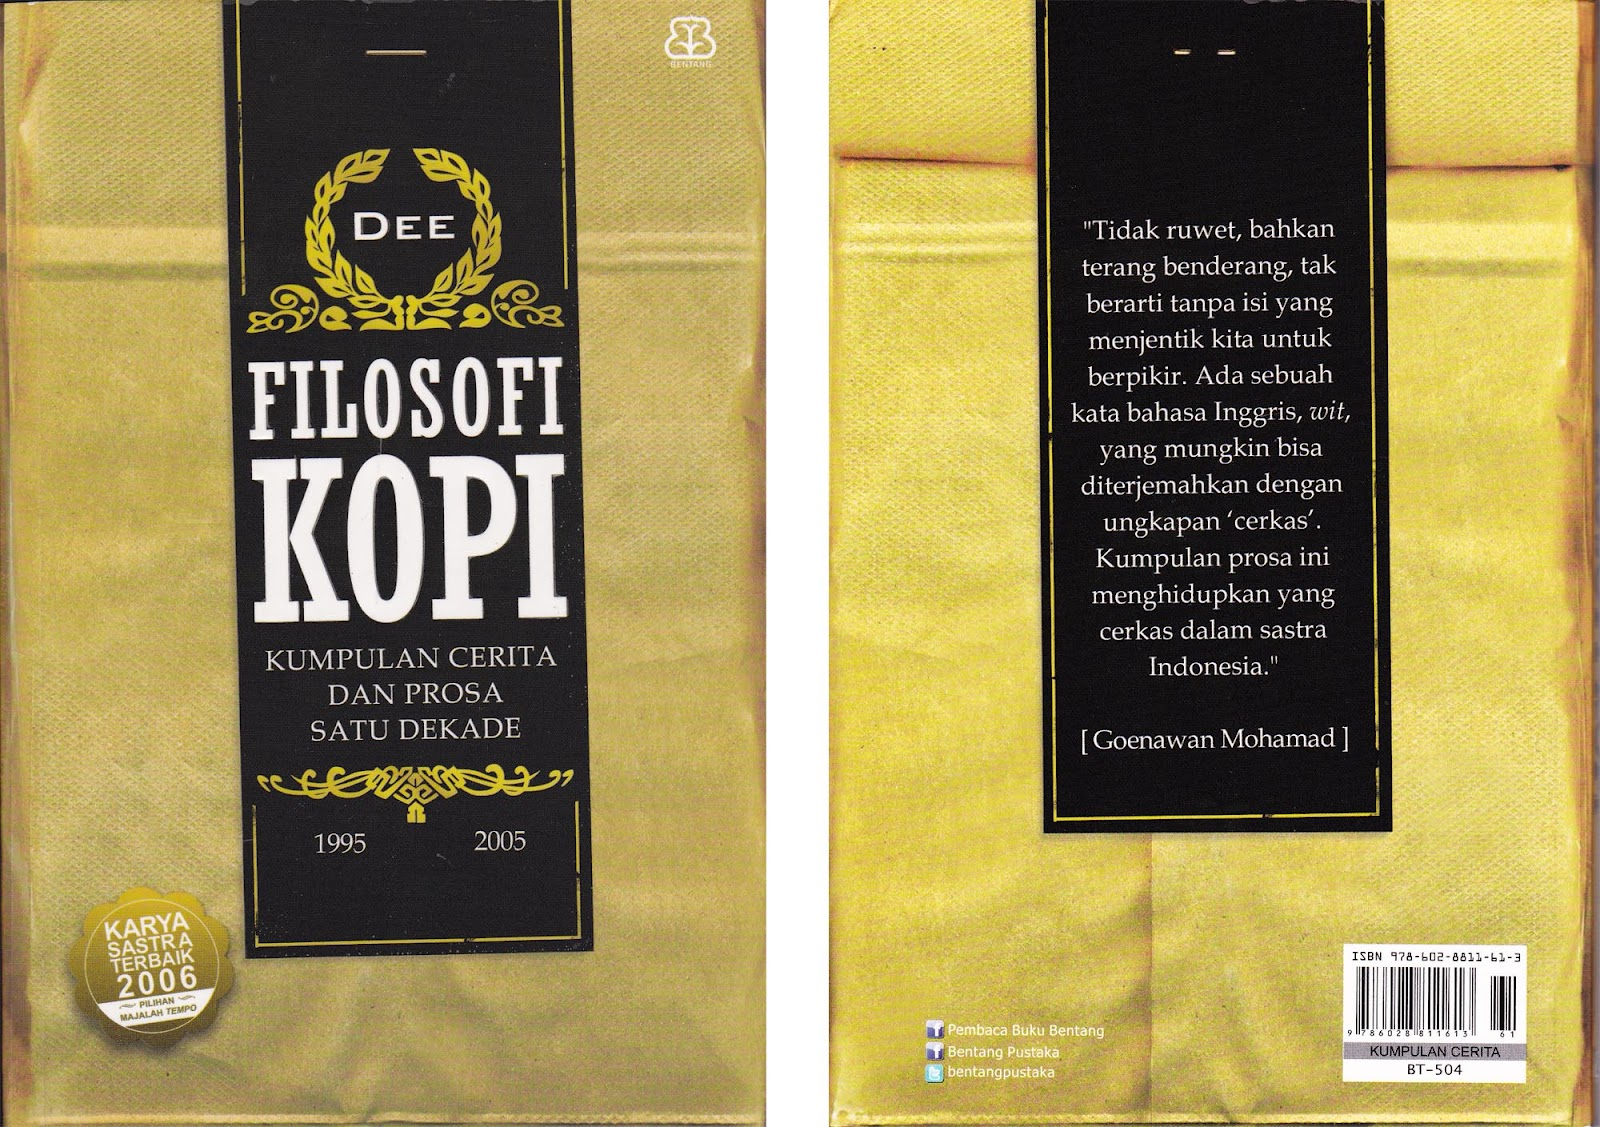 filosofi kopi download hd